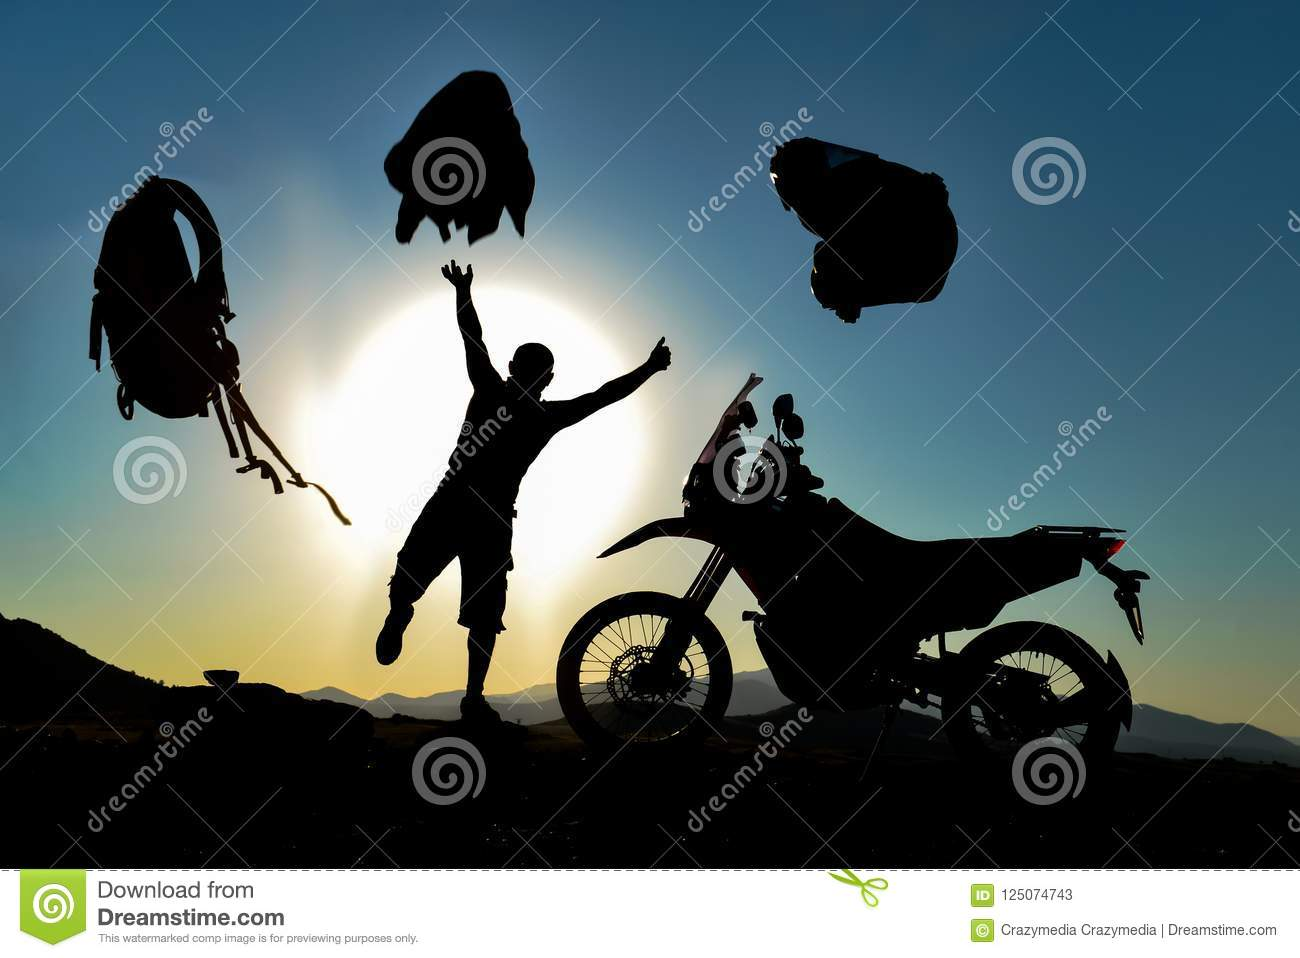 Motorcyclist In Silhoette Exhuberant Stock Image - Image of powerful